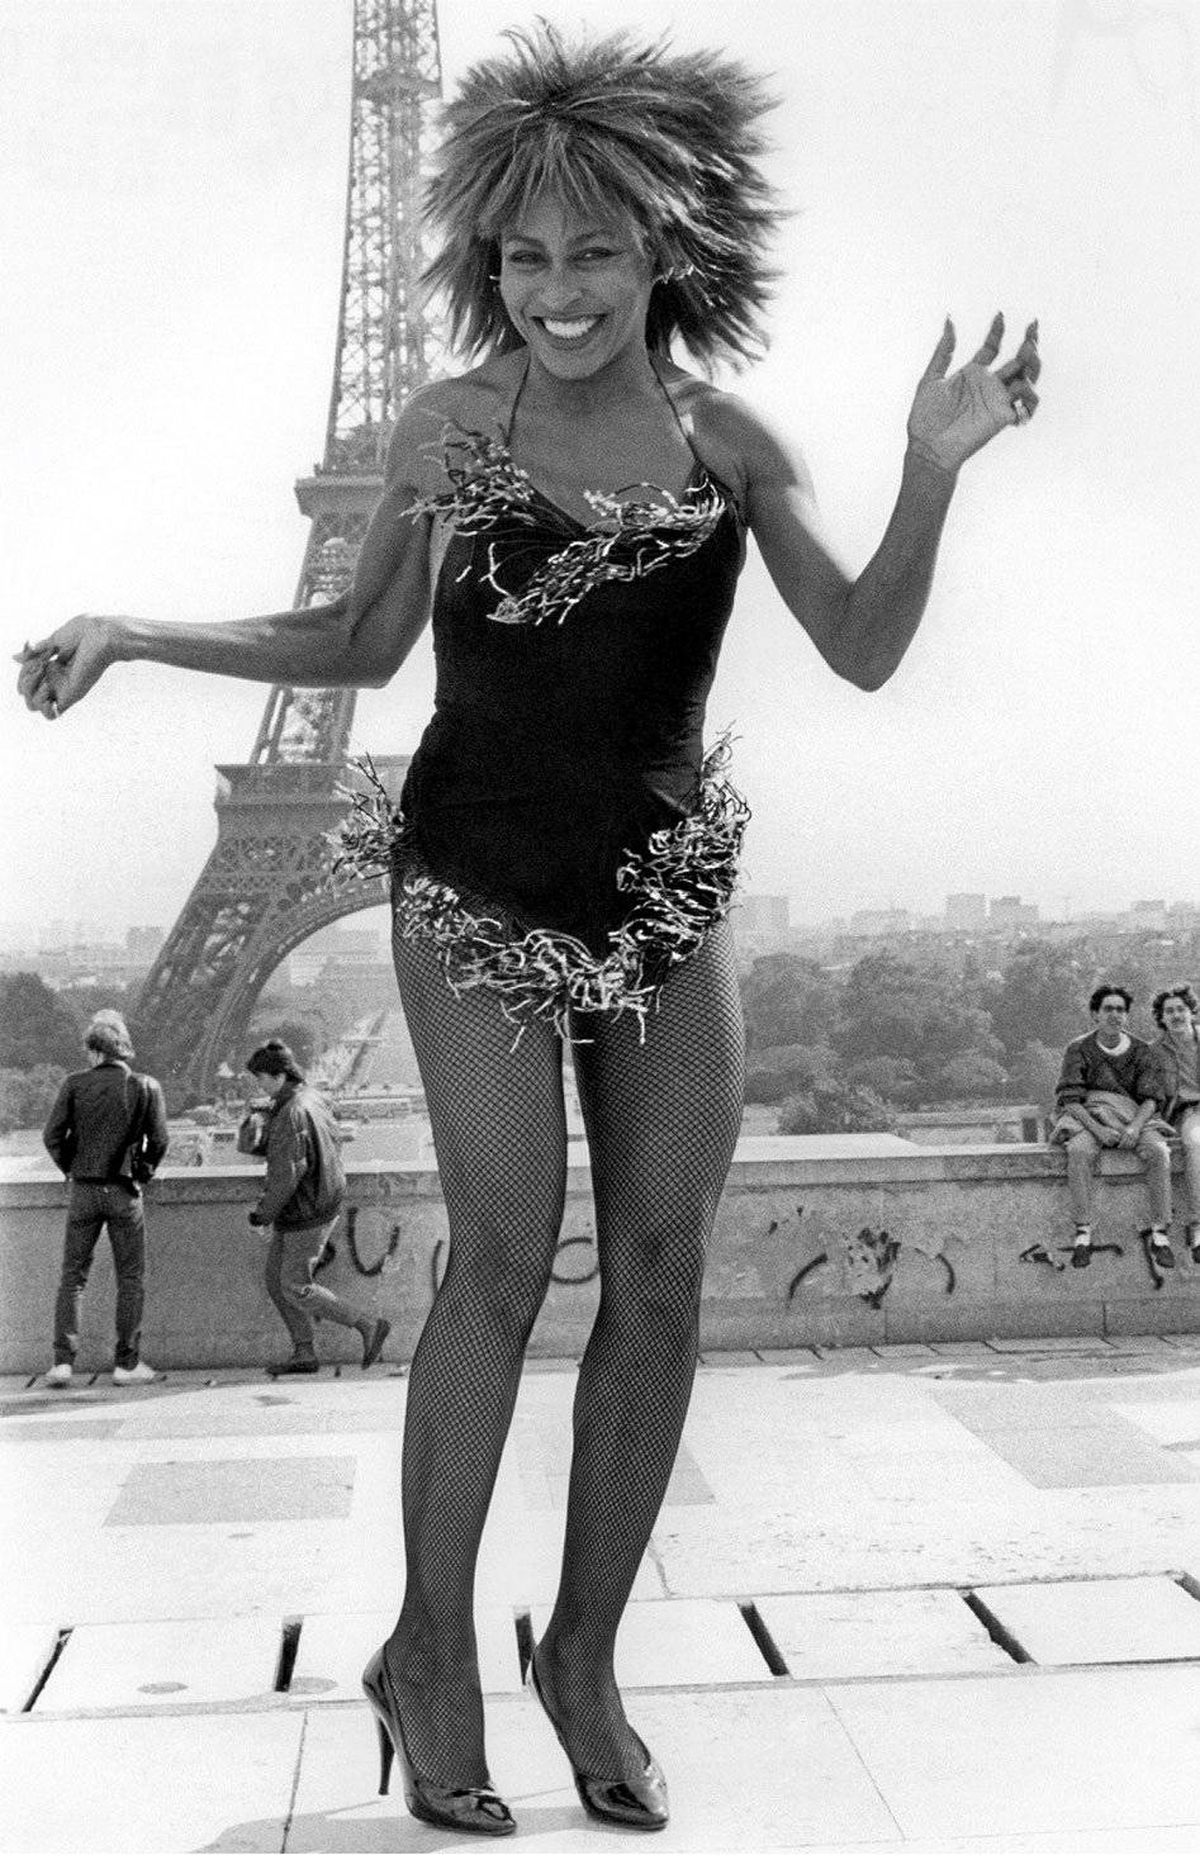 Tina Turner – Paris – Eiffel Tower (1984) I was returning from a family trip in 1984 and found out that Tina was in Paris recording a video, so I went there and I was able to take those pictures with the Eiffel Tower in the background. It really came out pretty well. Ike and Tina Turner were one of the first bands I travelled with in 1970. I was good friends with Tina by that time and they were happy to see me.